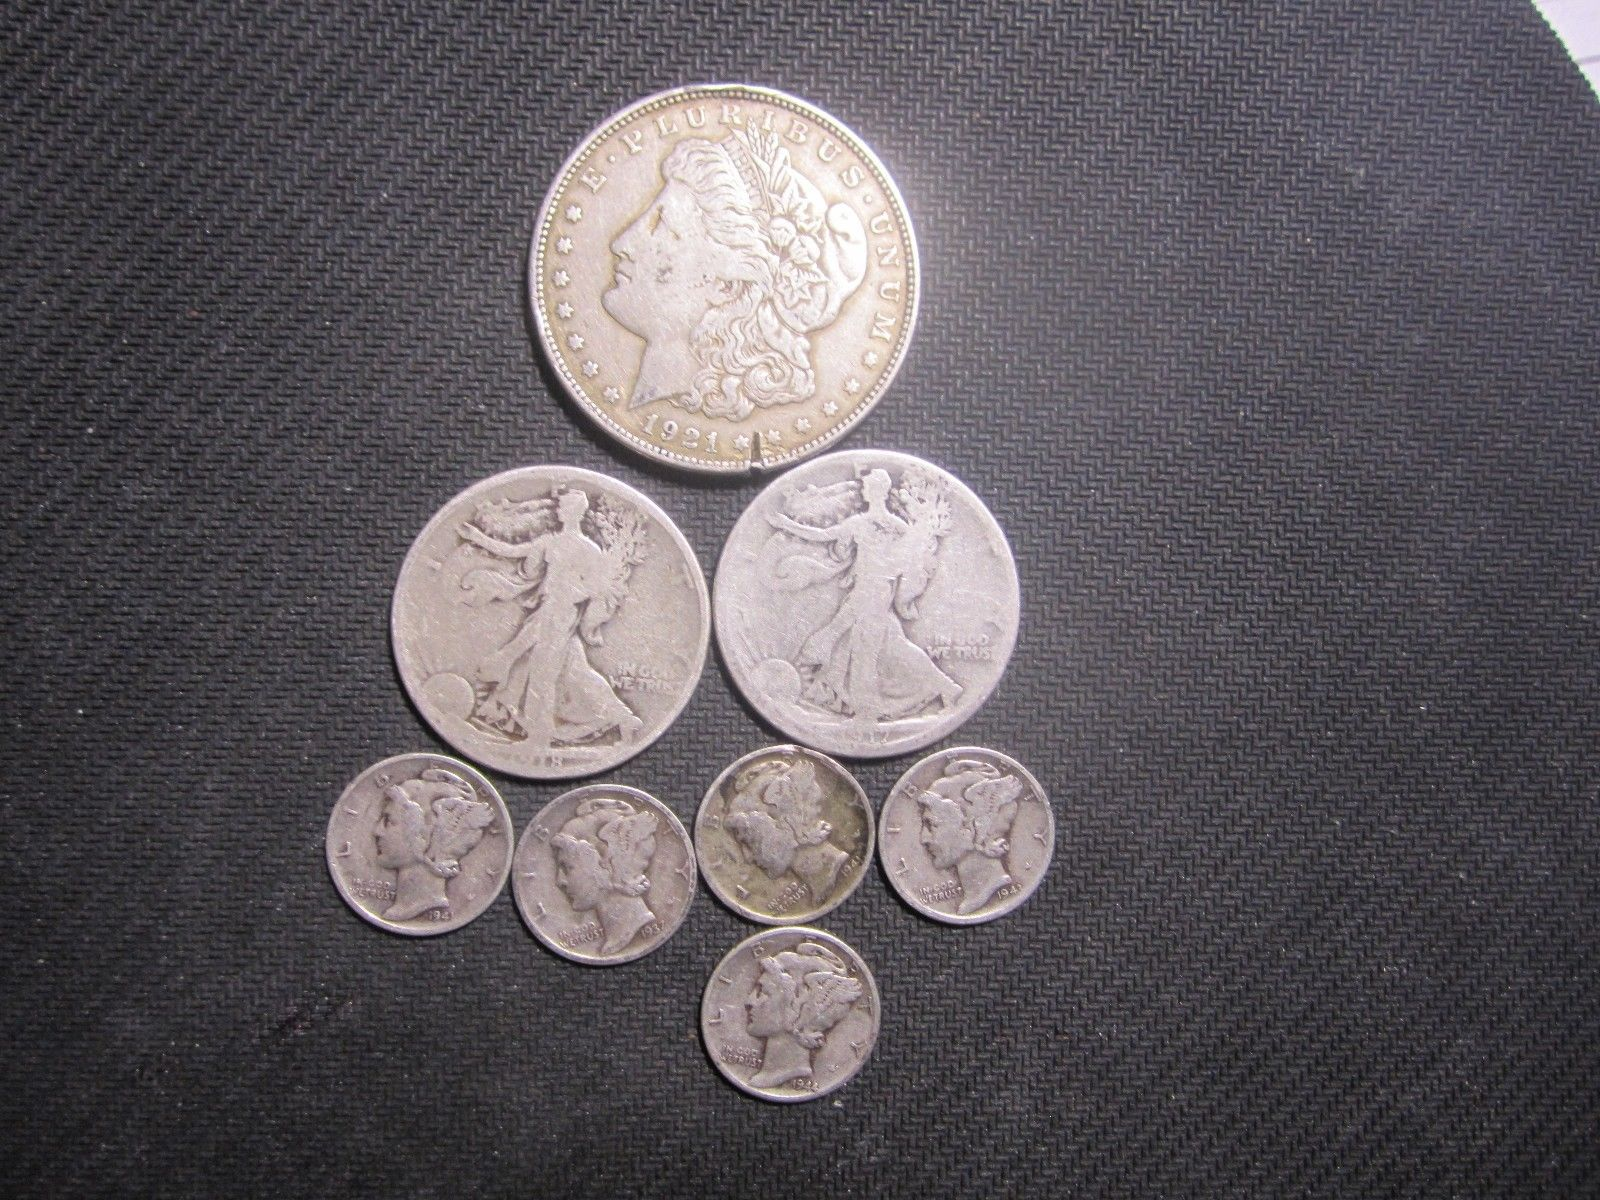 """#New post #Buy Silver Coins and bid on ACTUAL SILVER WEIGHT--1.79 Silver Troy Ounces  http://i.ebayimg.com/images/g/GhIAAOSw32lYvFT3/s-l1600.jpg      Item specifics   Seller Notes: """"Morgan Dollar has a rim nick""""       Circulated/Uncirculated:   Circulated   Composition:   Silver     Strike Type:   Business      Buy Silver Coins and bid on... https://www.shopnet.one/buy-silver-coi"""